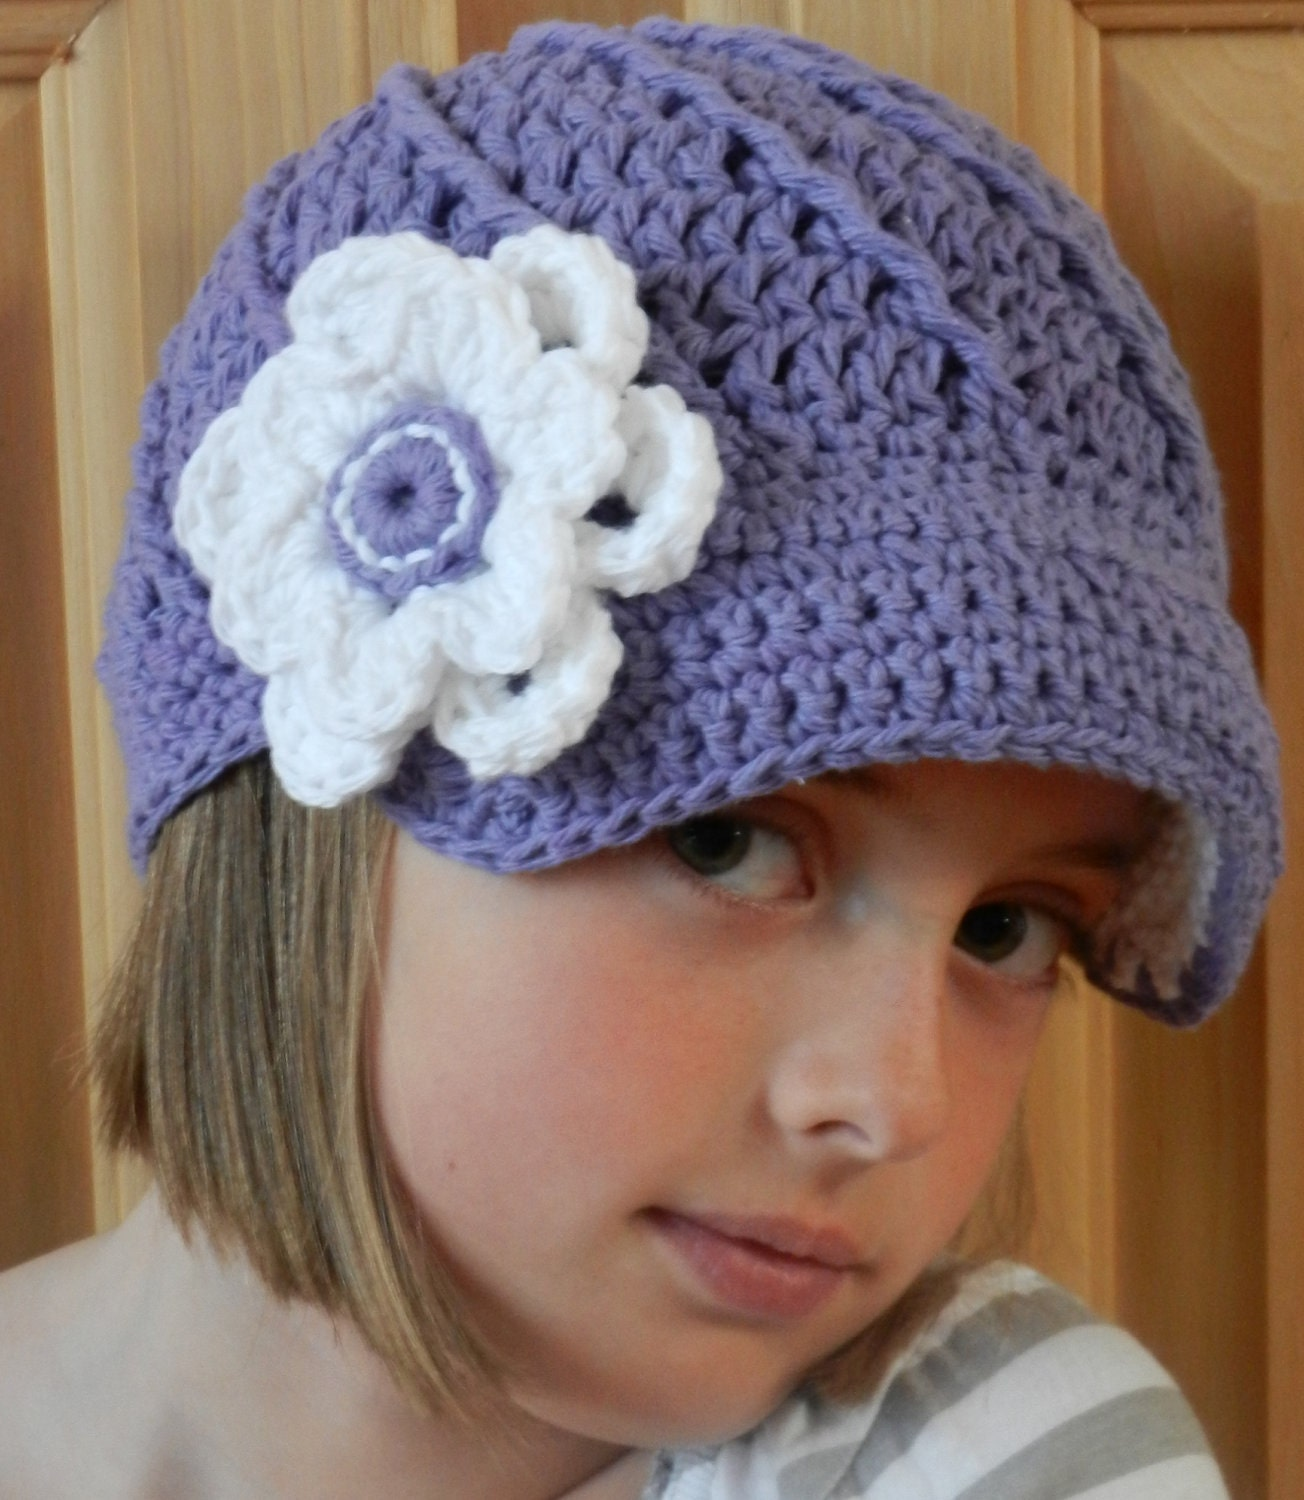 Crochet Hat Pattern Twisted Newsboy Crochet Hat by KismetCrochet